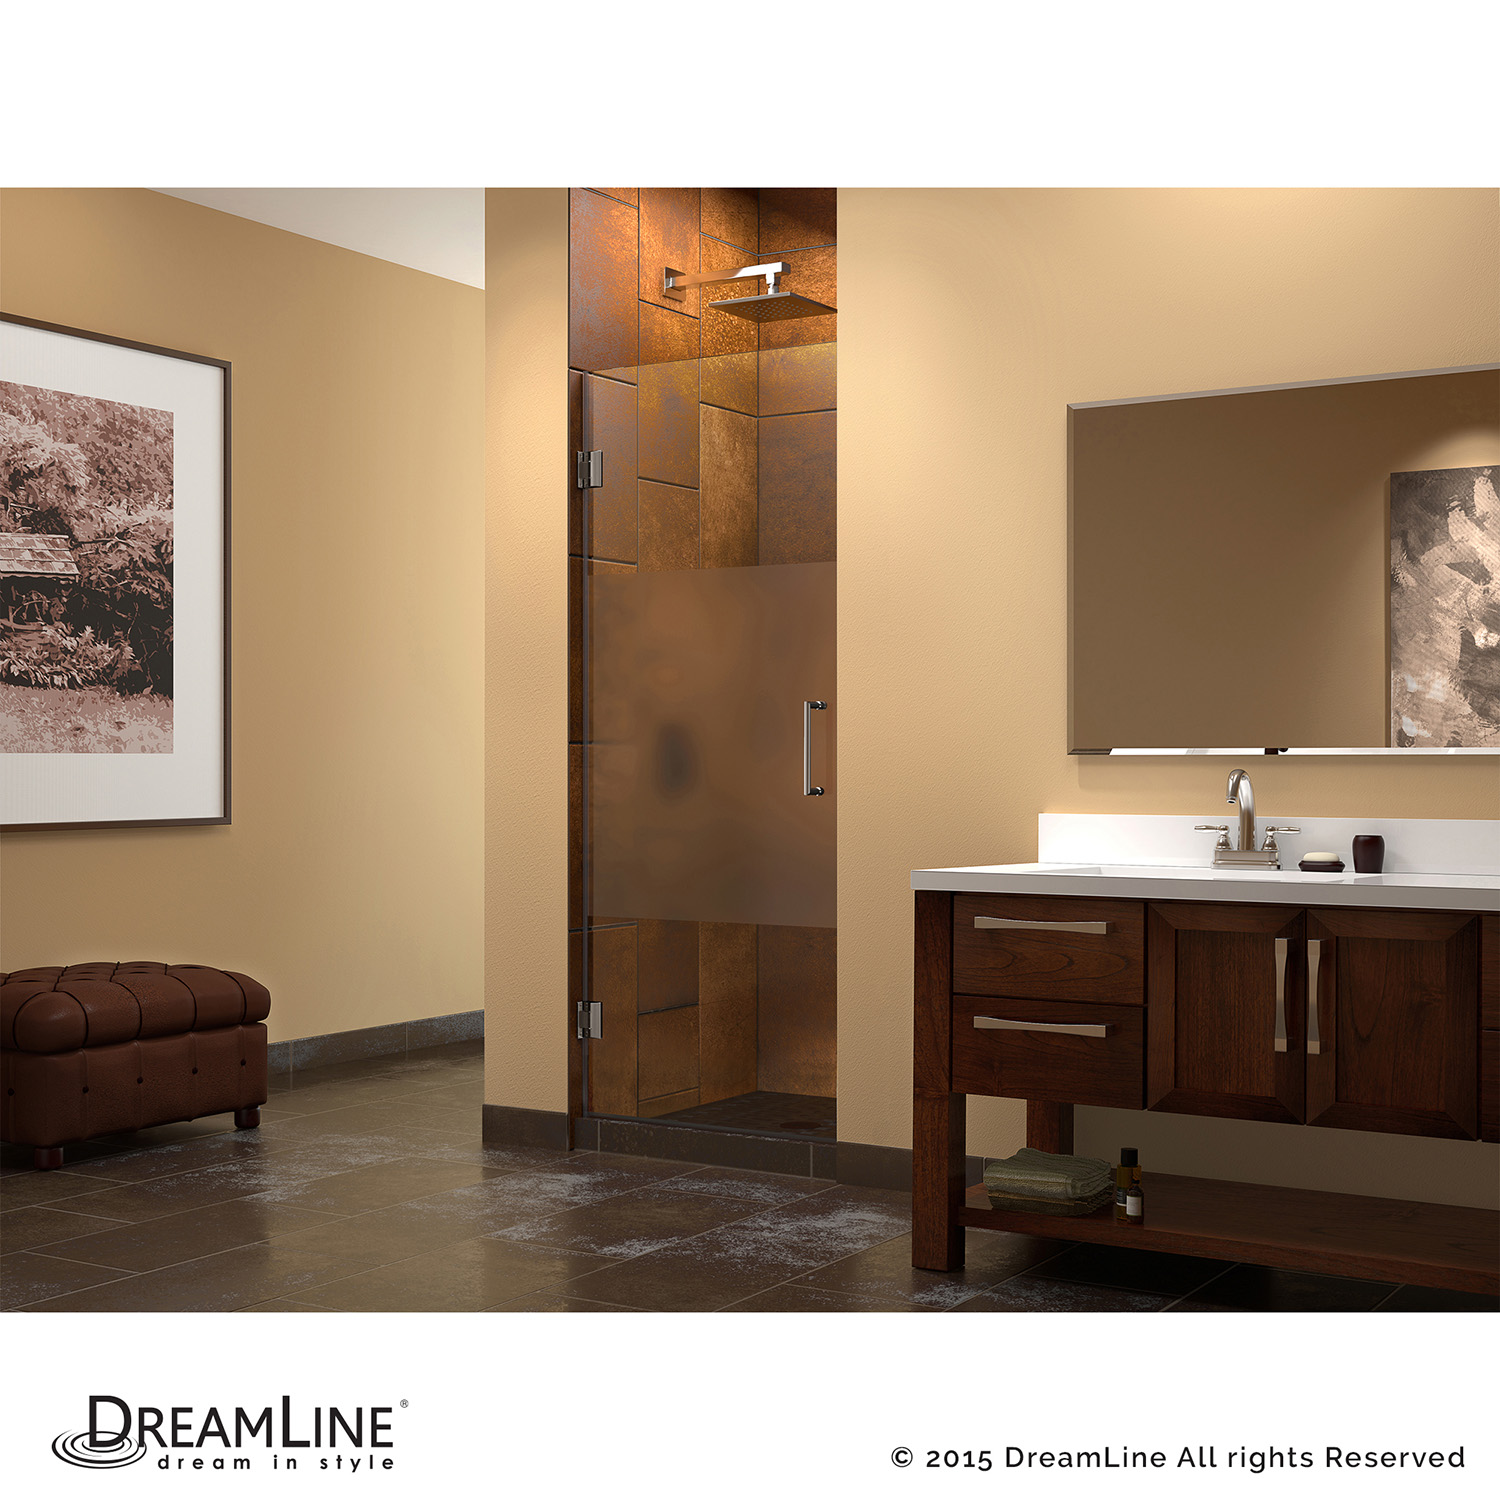 Bath4all Dreamline Shdr 20247210f Hfr 04 Unidoor 24 W X